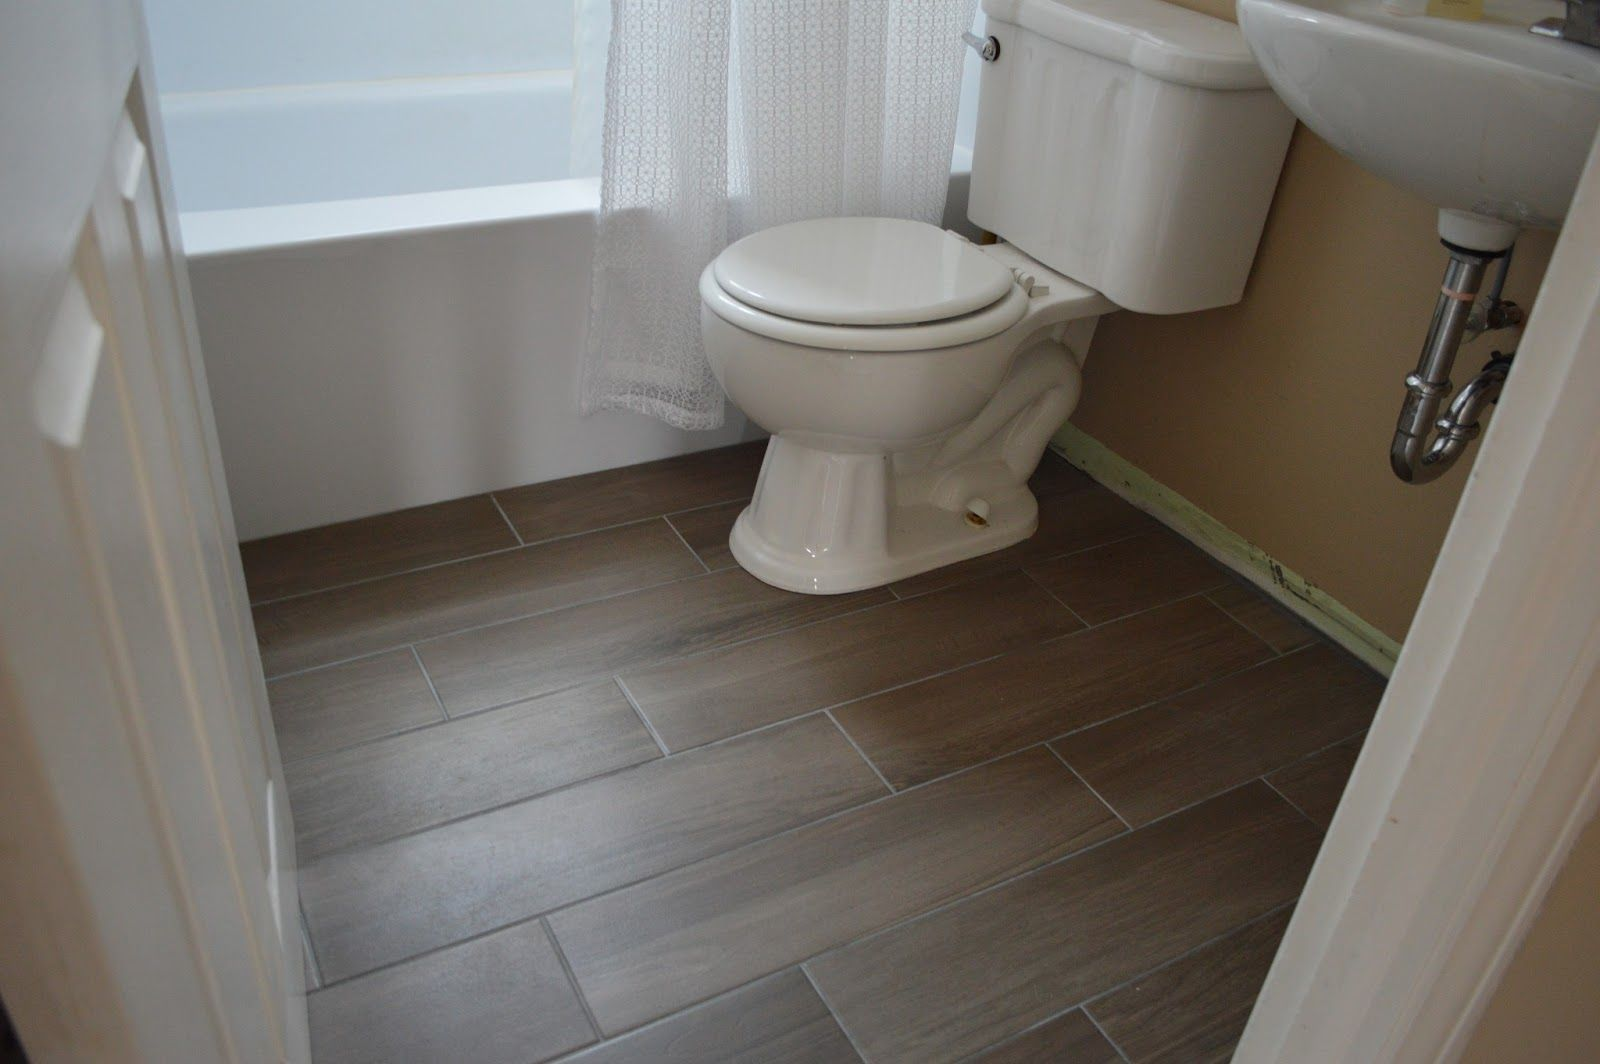 Found another nice picture about Bathroom Tile Flooring check this ...